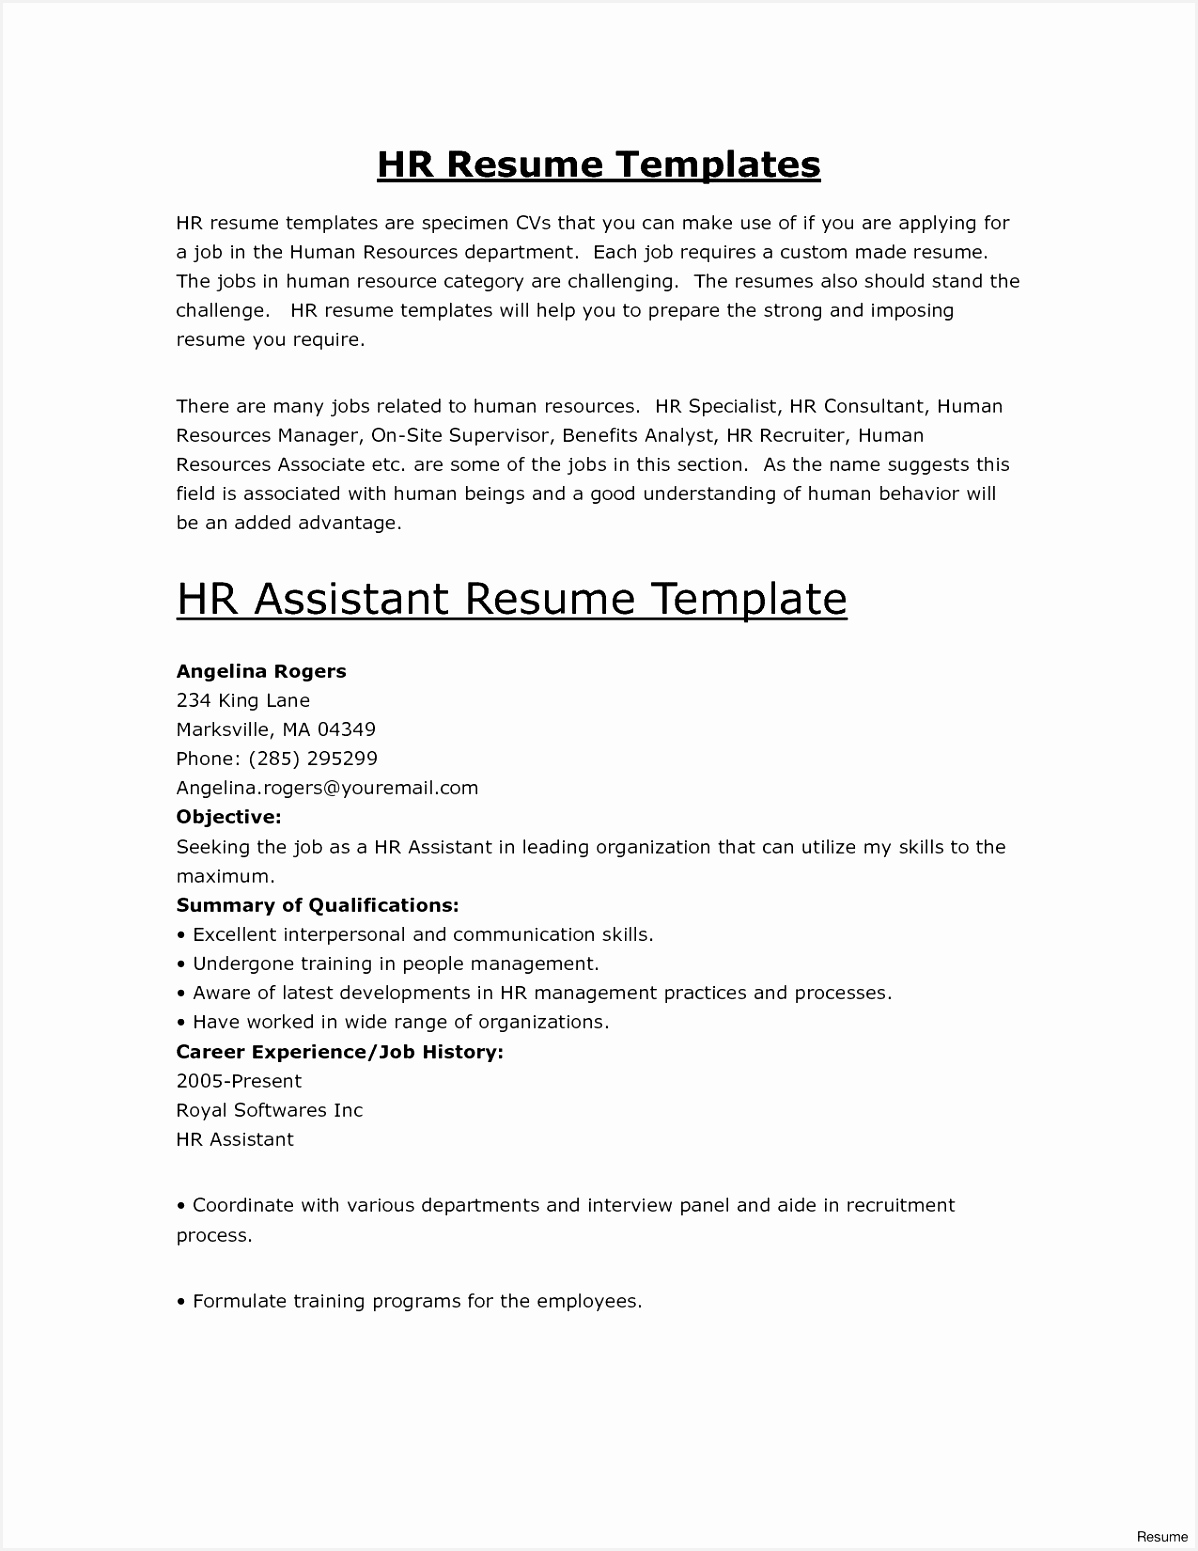 Examples Resumes for Jobs A0k4j Inspirational Example Job Resume Beautiful Luxury Examples Resumes Ecologist Of Examples Resumes for Jobs Anrsu Luxury Examples A Resume Lovely Example Job Resume Fresh Luxury Examples